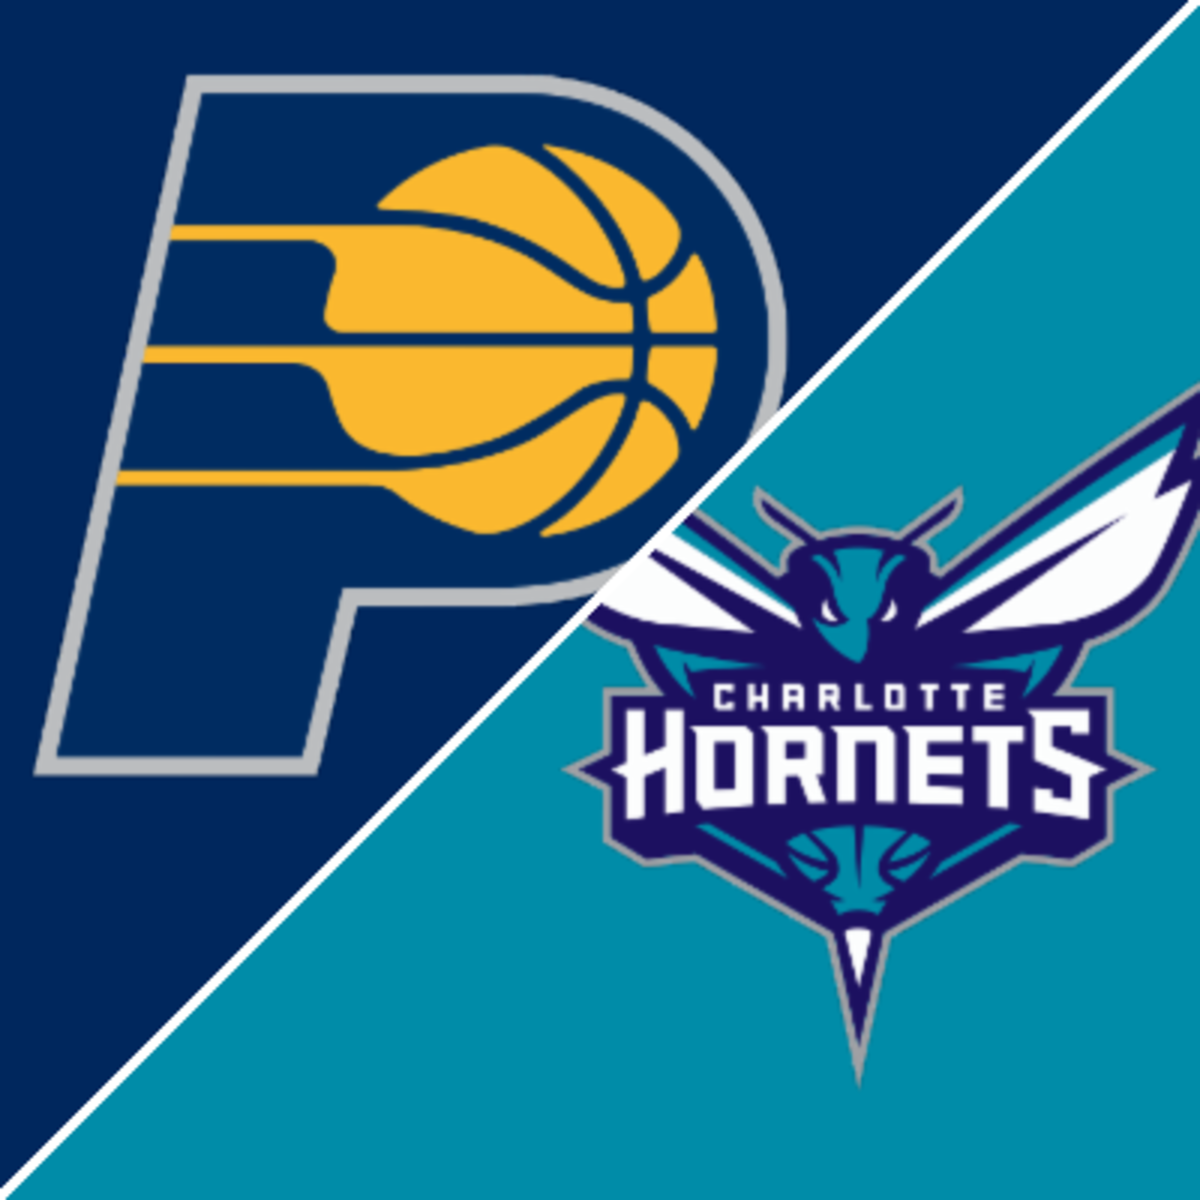 The 9th seeded Pacers will play the 10th seeded Hornets as they fight for an opportunity to play for the 8th seed.